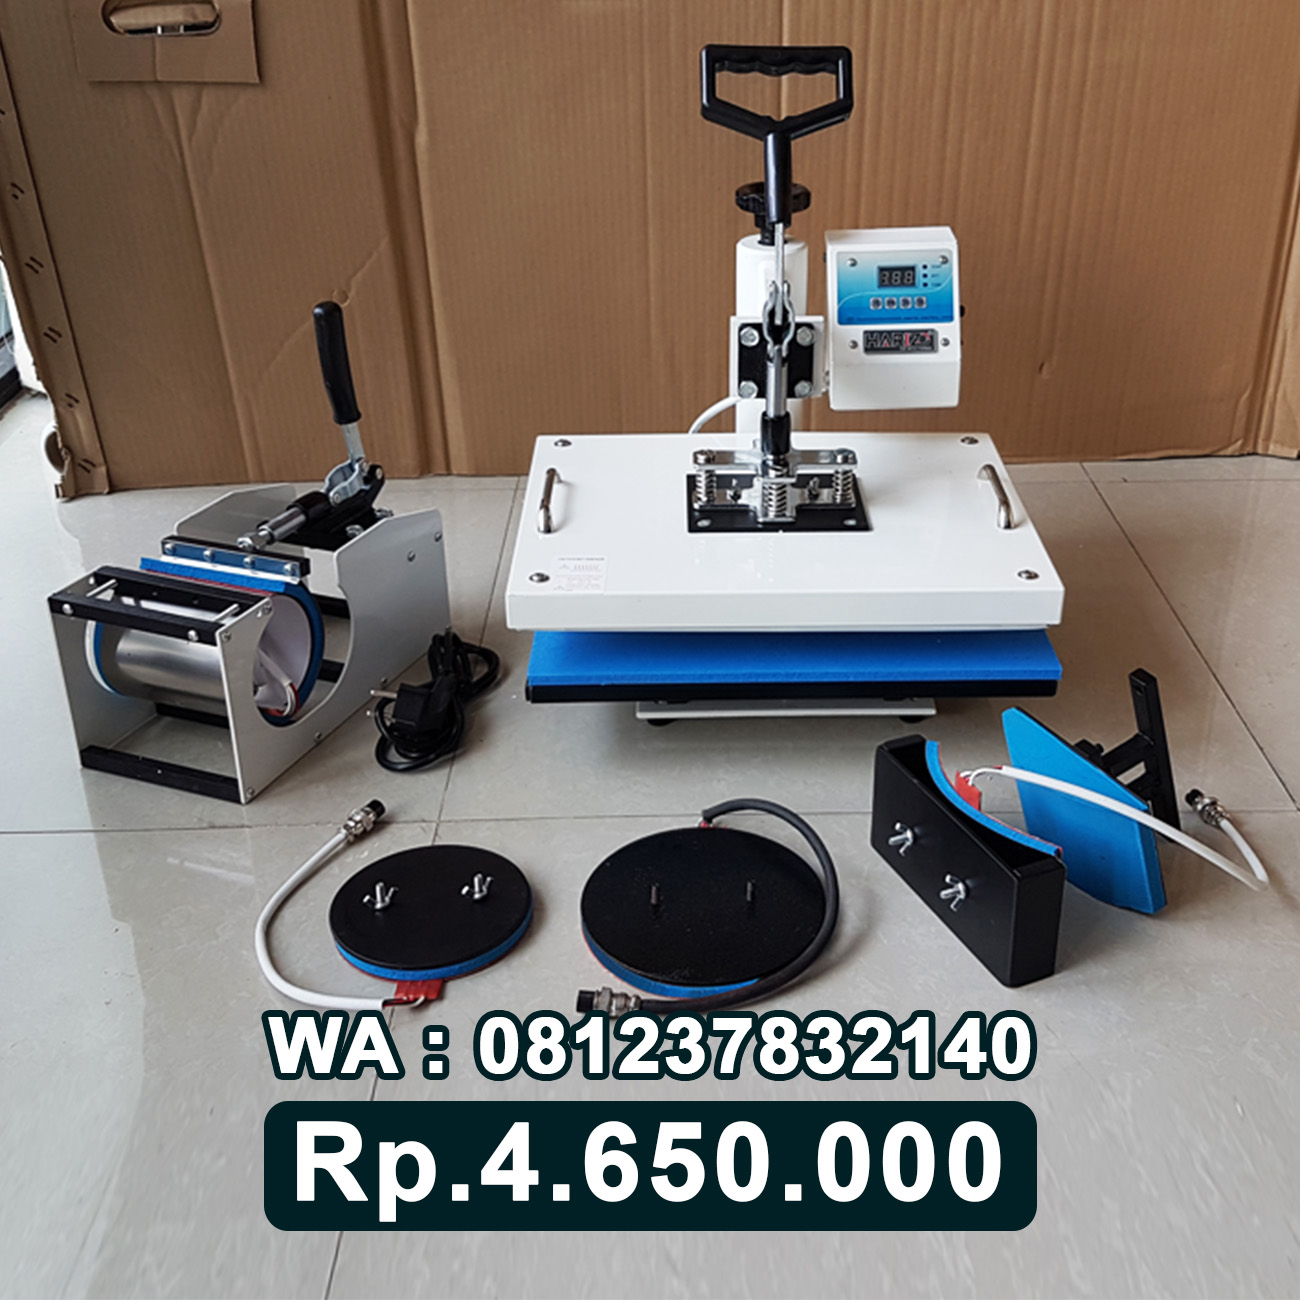 MESIN PRESS KAOS DIGITAL Probolinggo